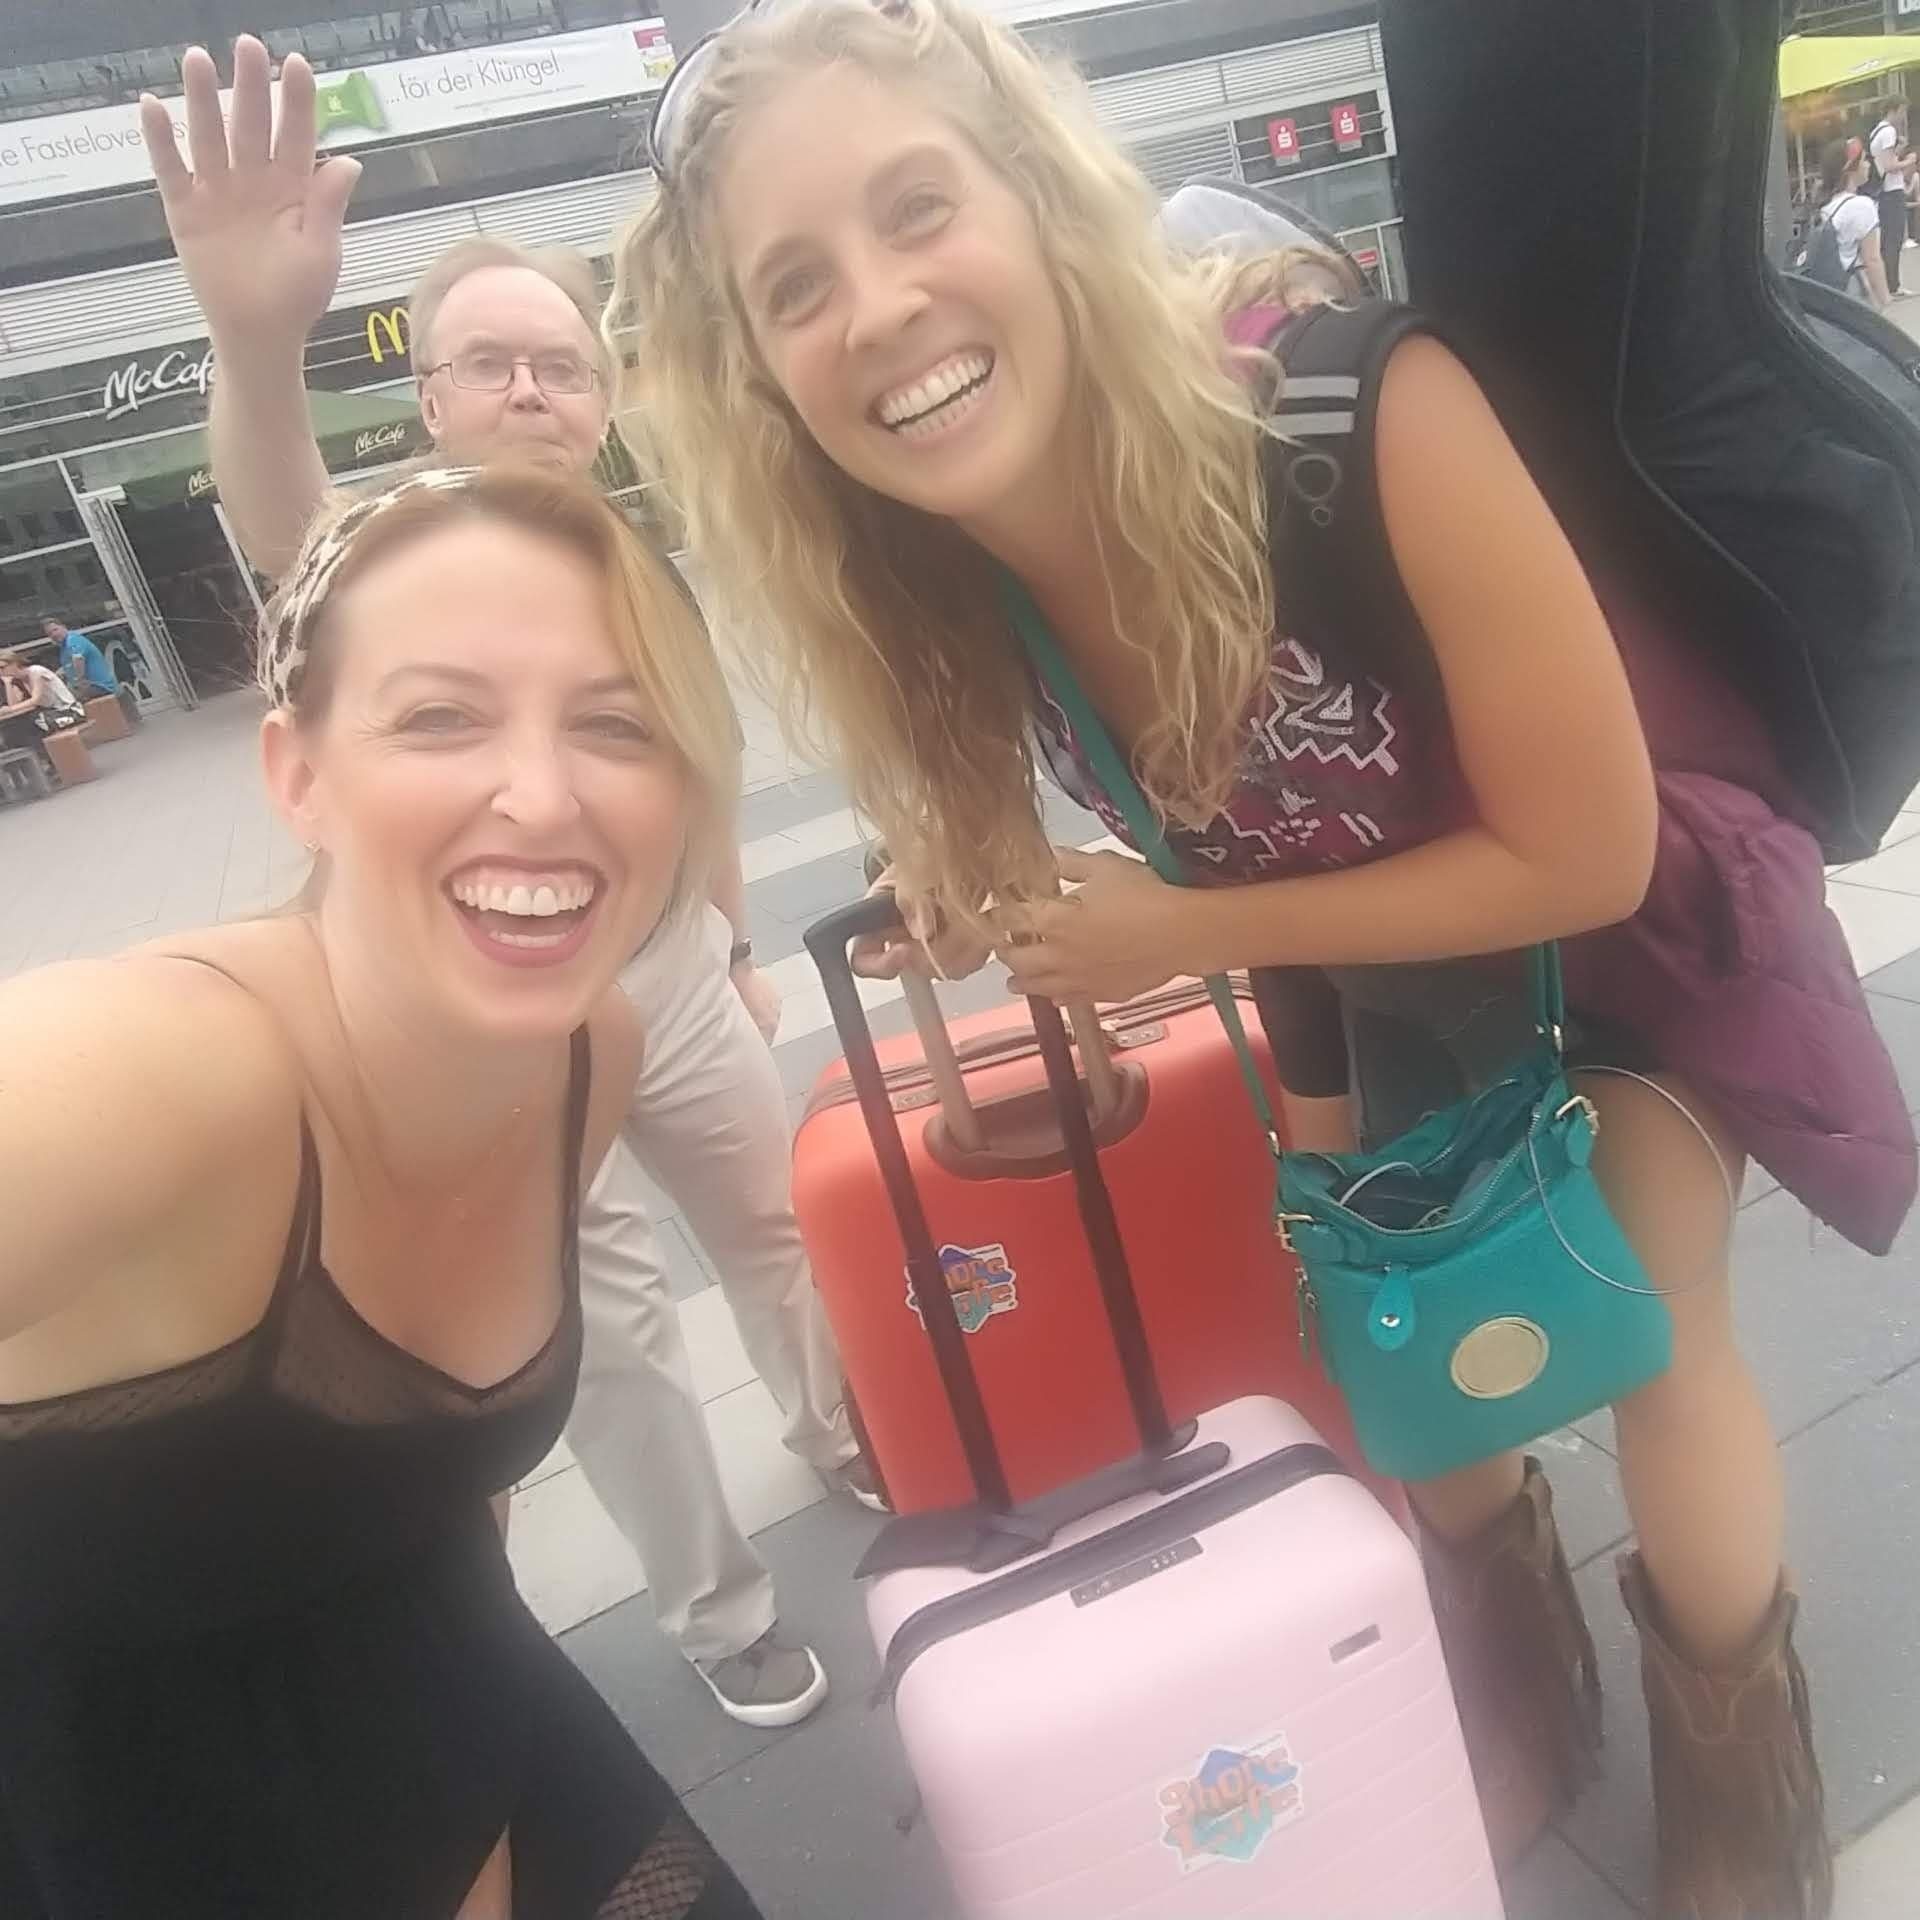 Two women smiling at the camera with a man waving in the background